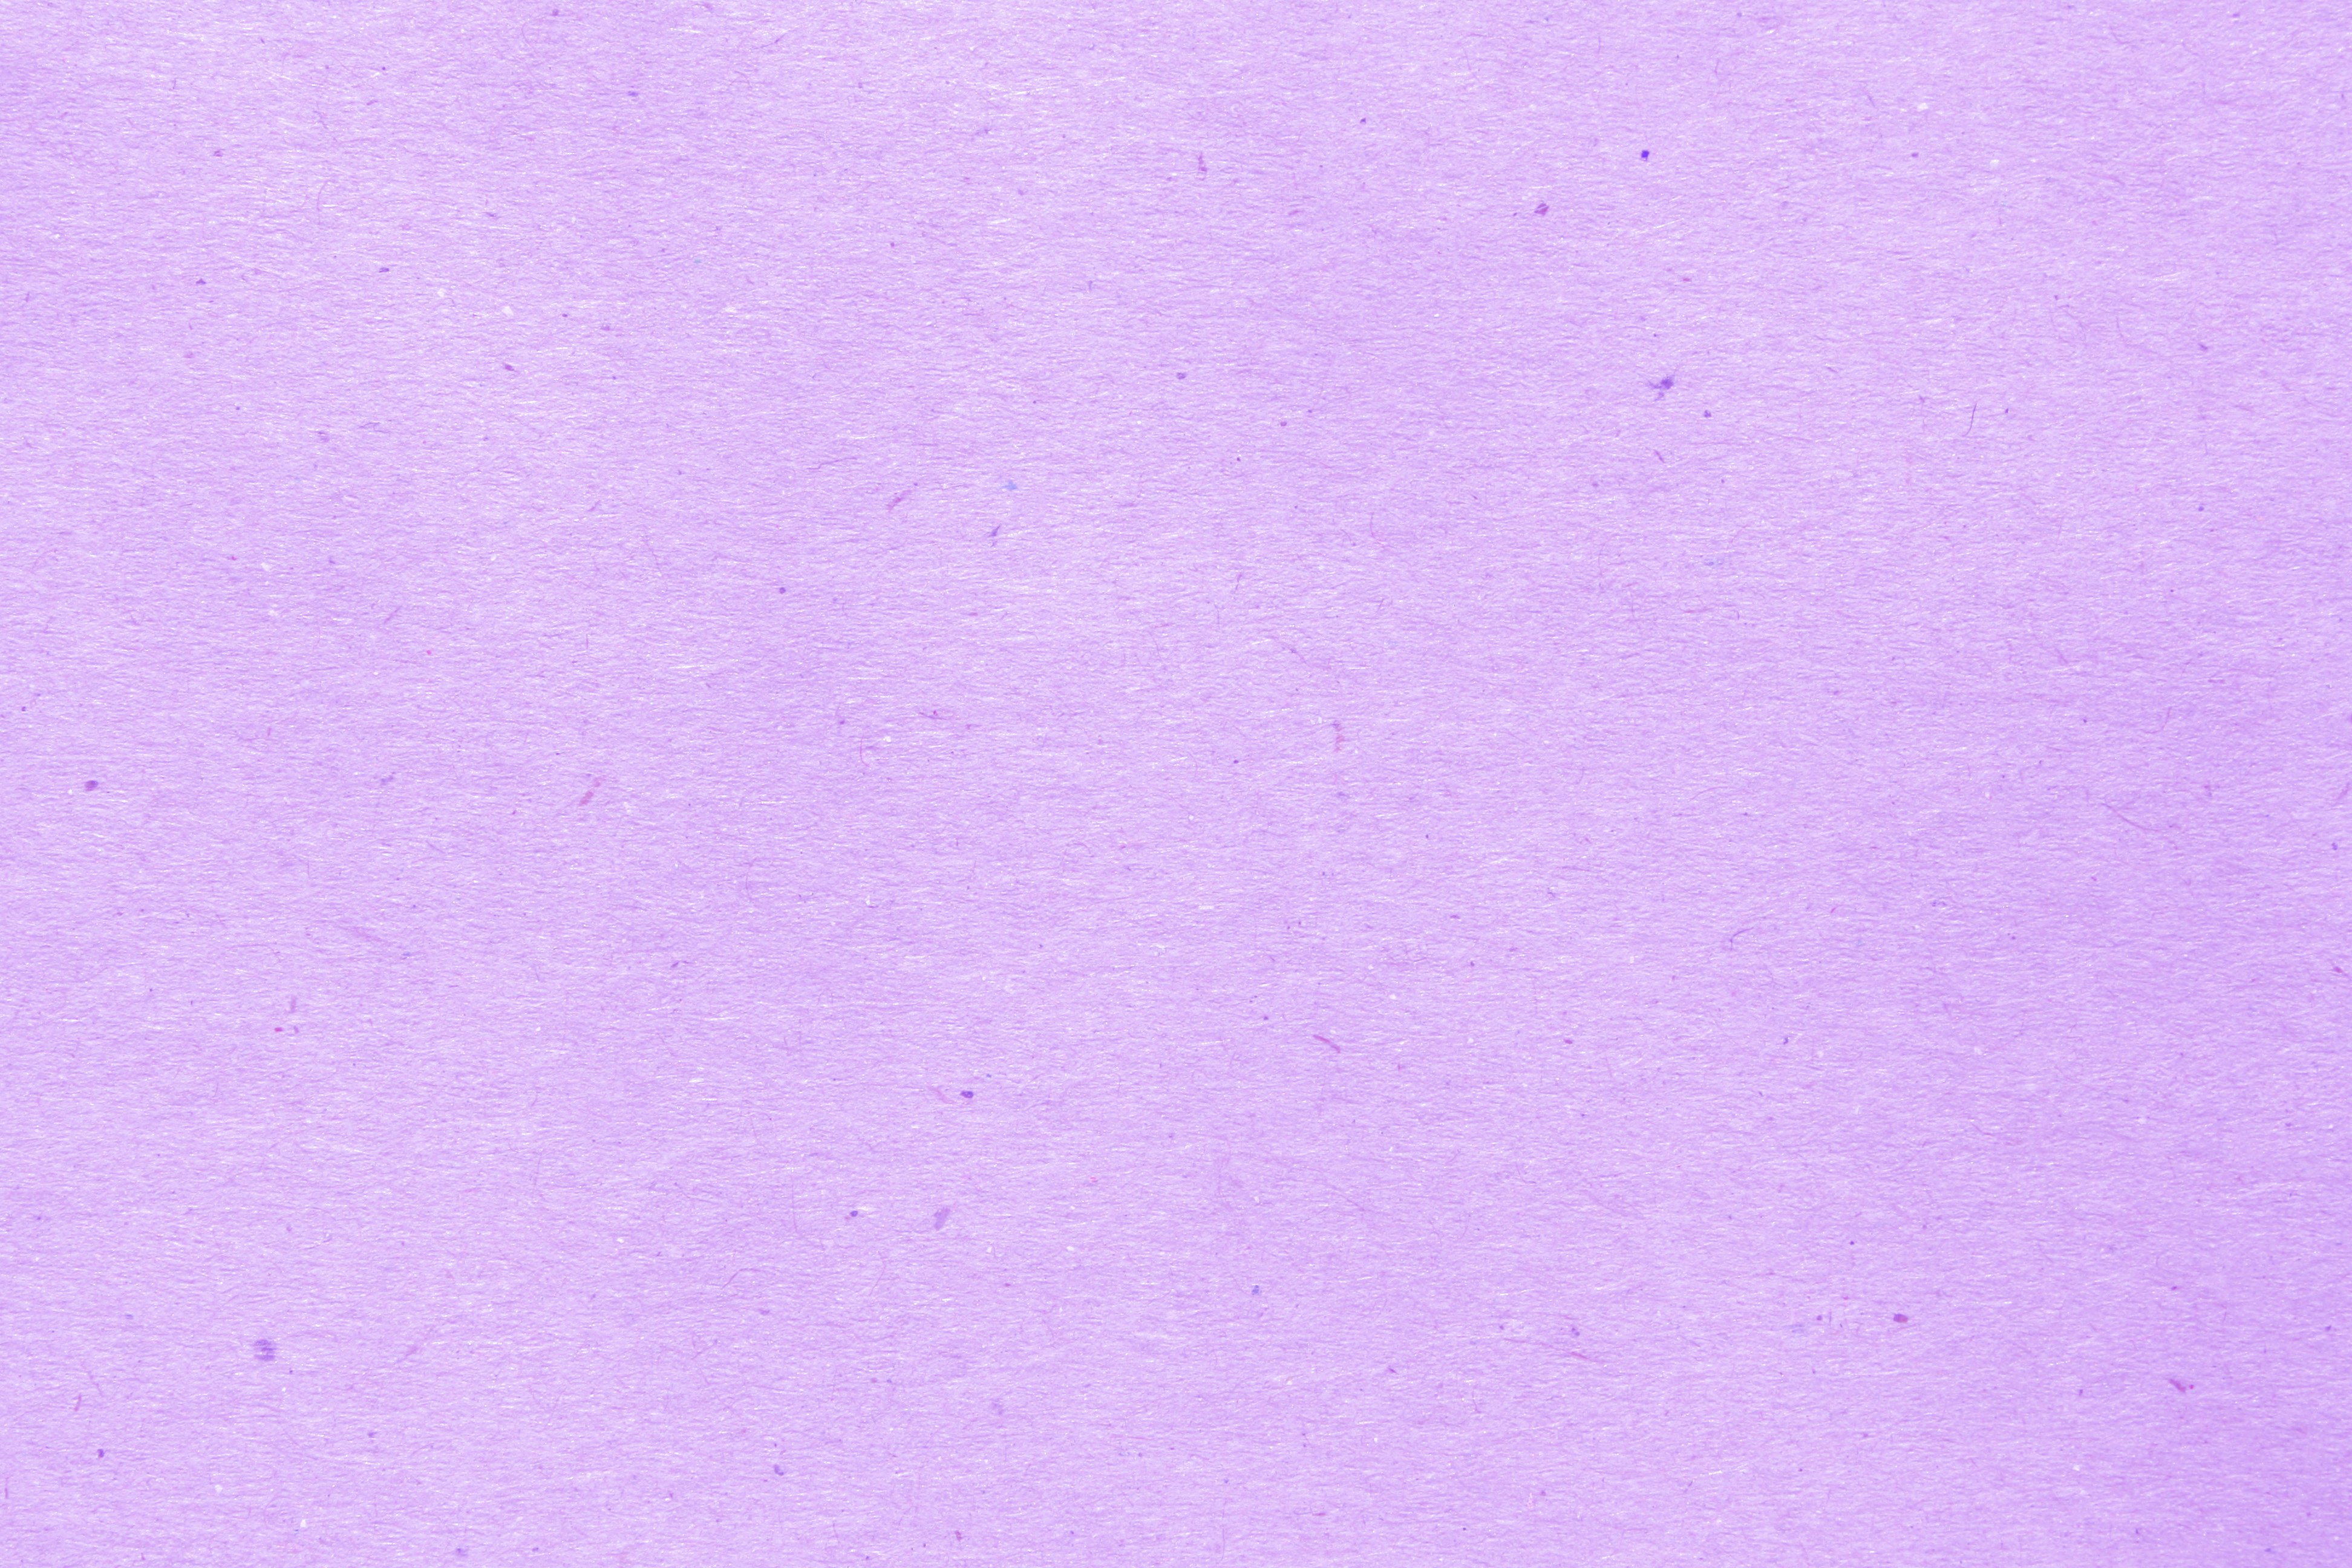 Lavender Purple Paper Texture With Flecks Picture Free